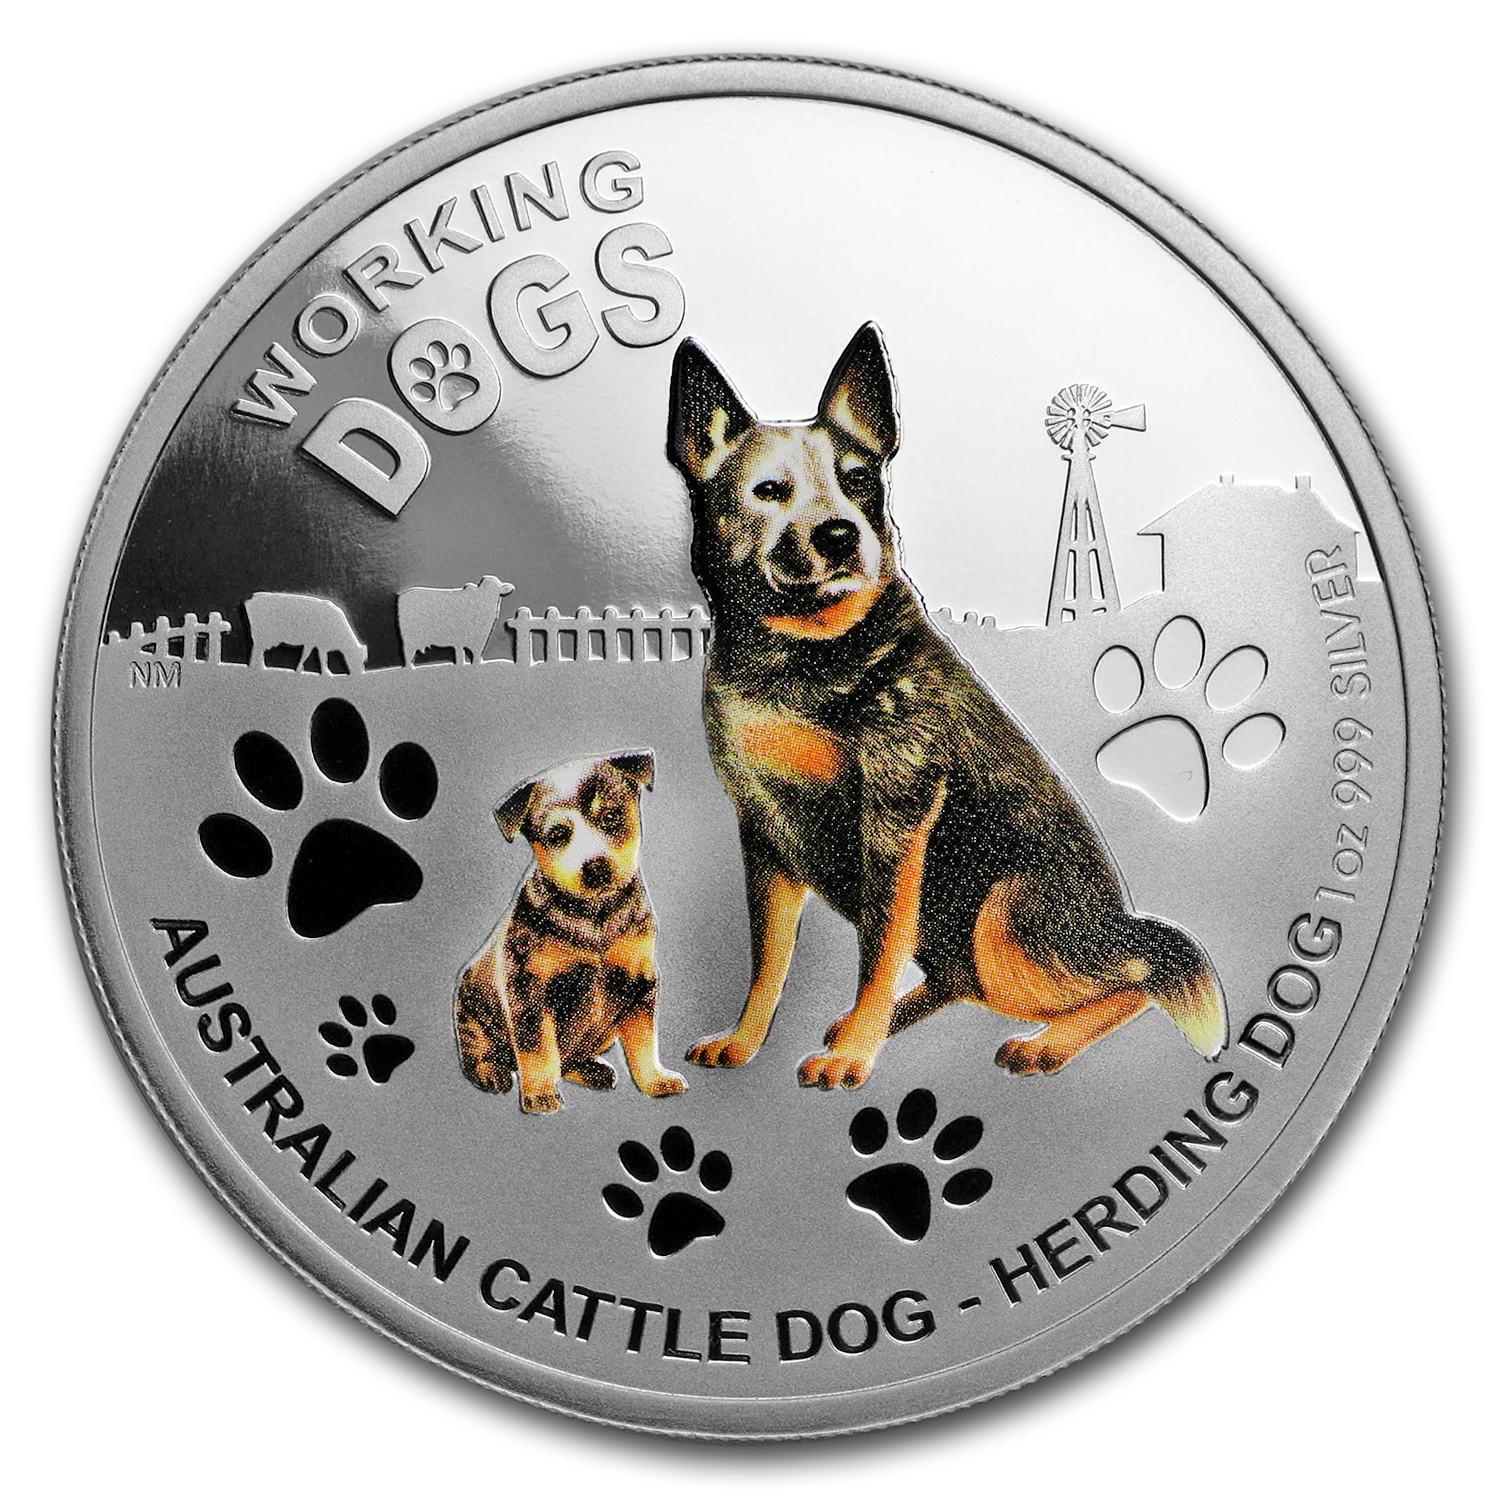 2011 1 oz Proof Silver Australian Cattle Dog - Working Dog